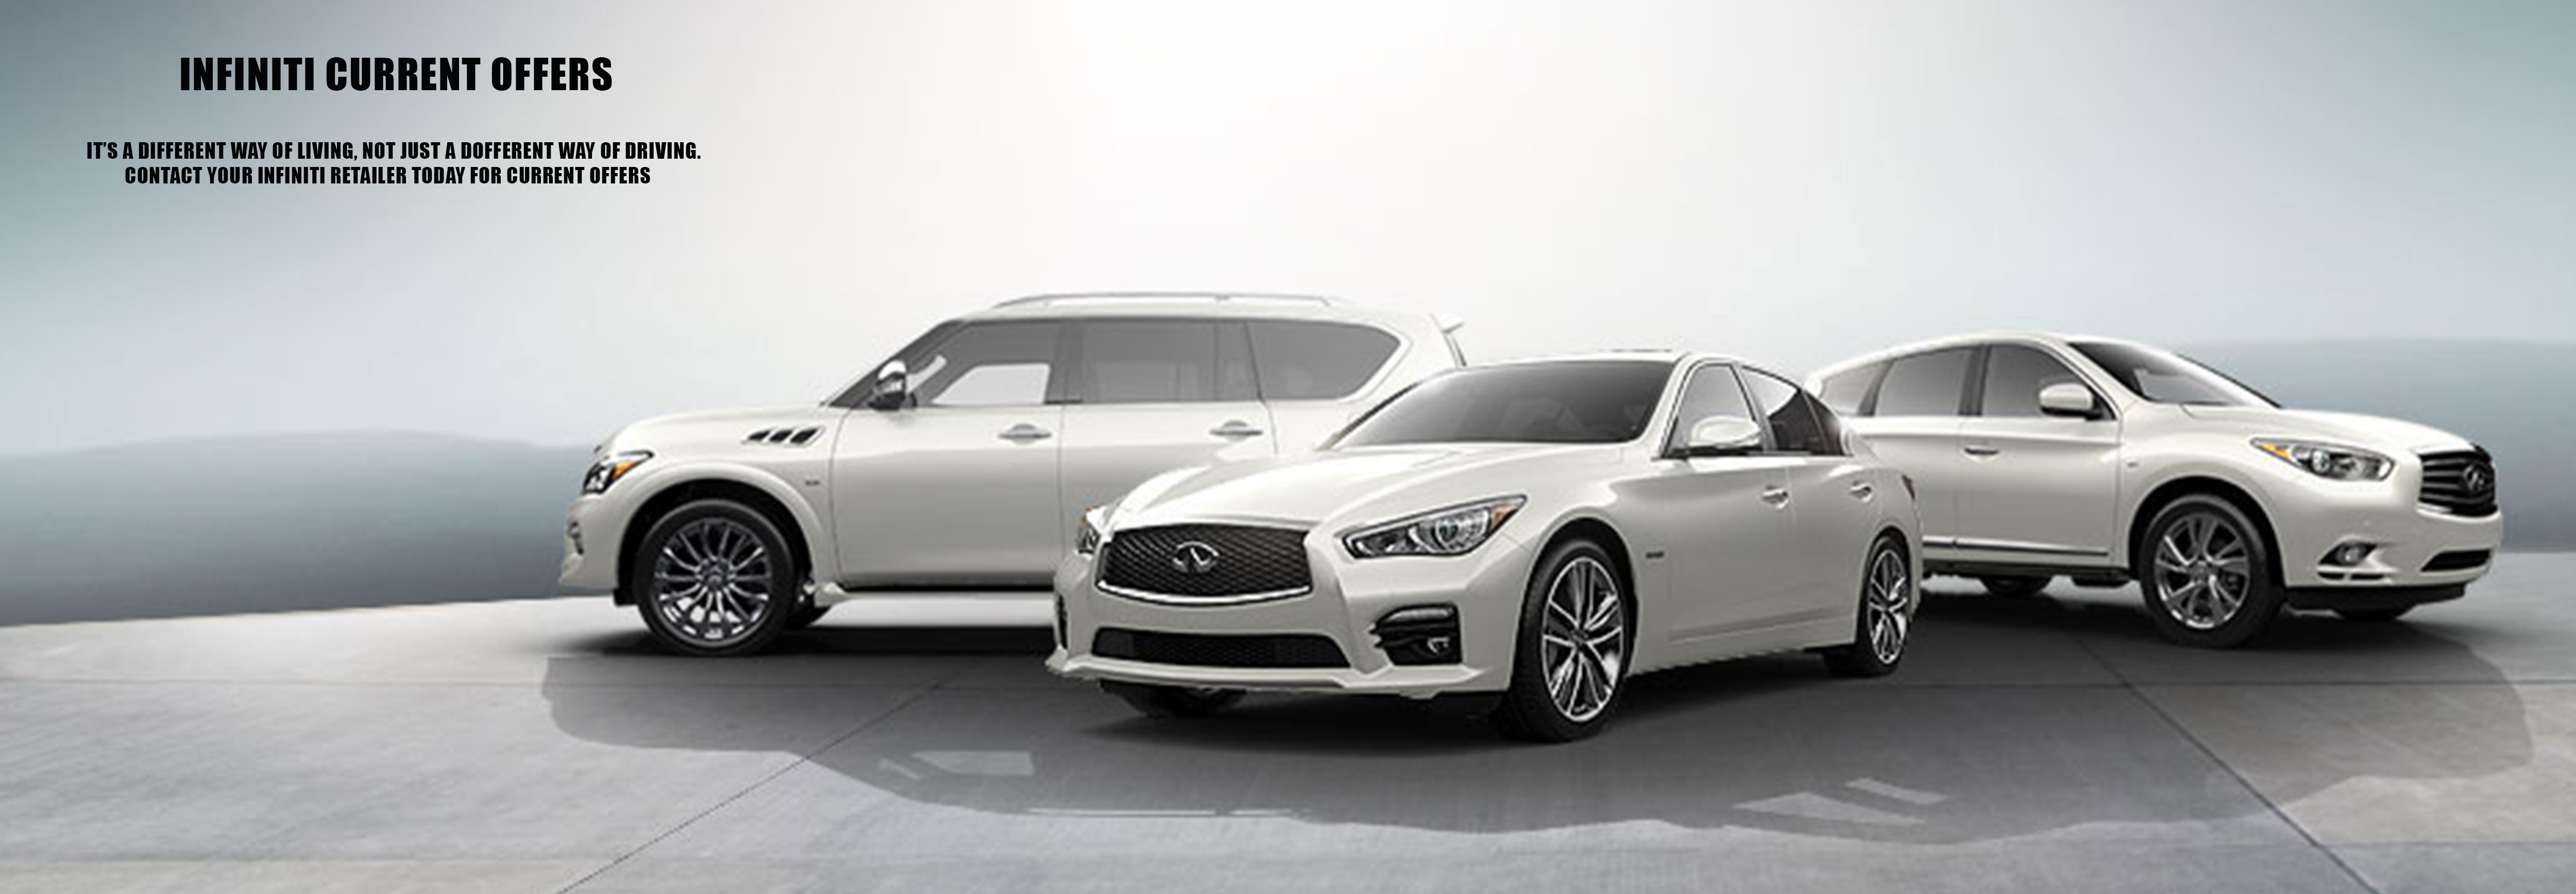 Infiniti Current Offers